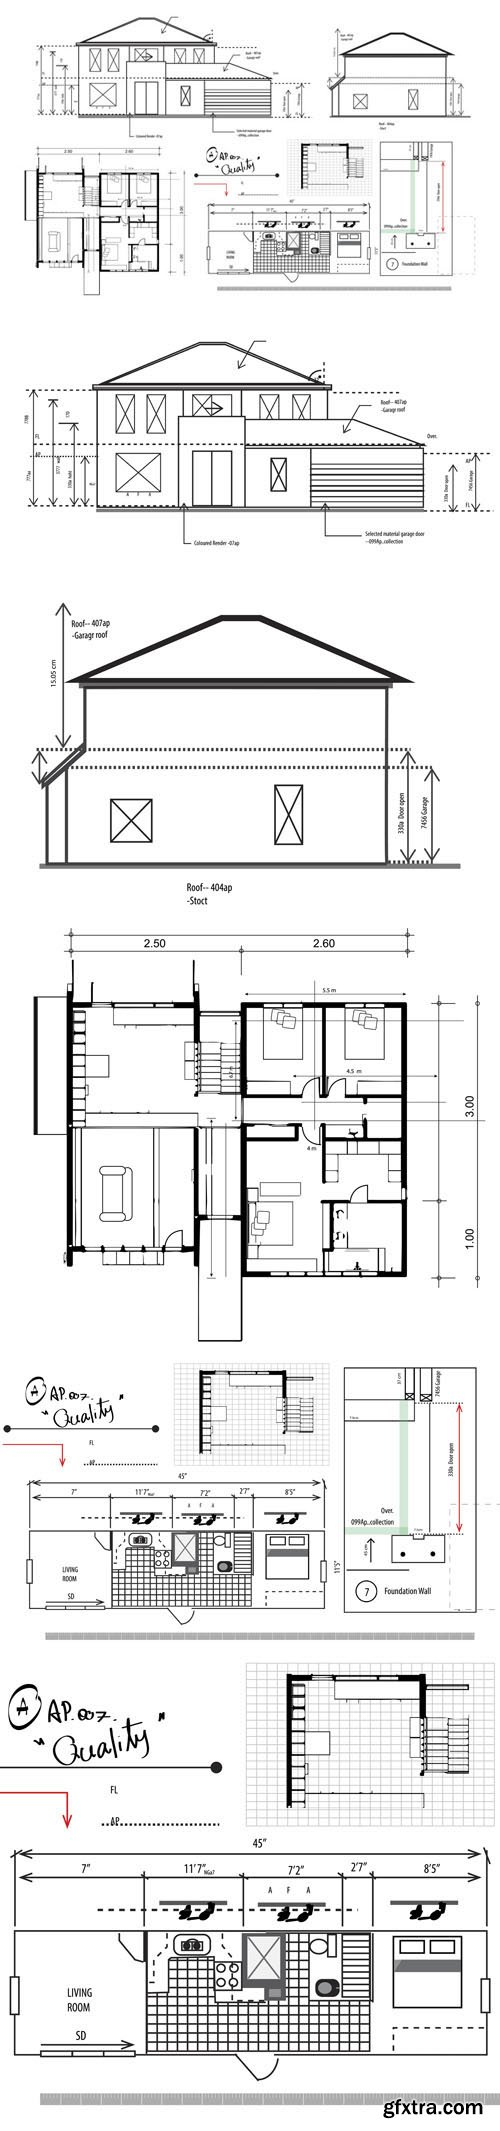 House Planning Illustration - Vector Template